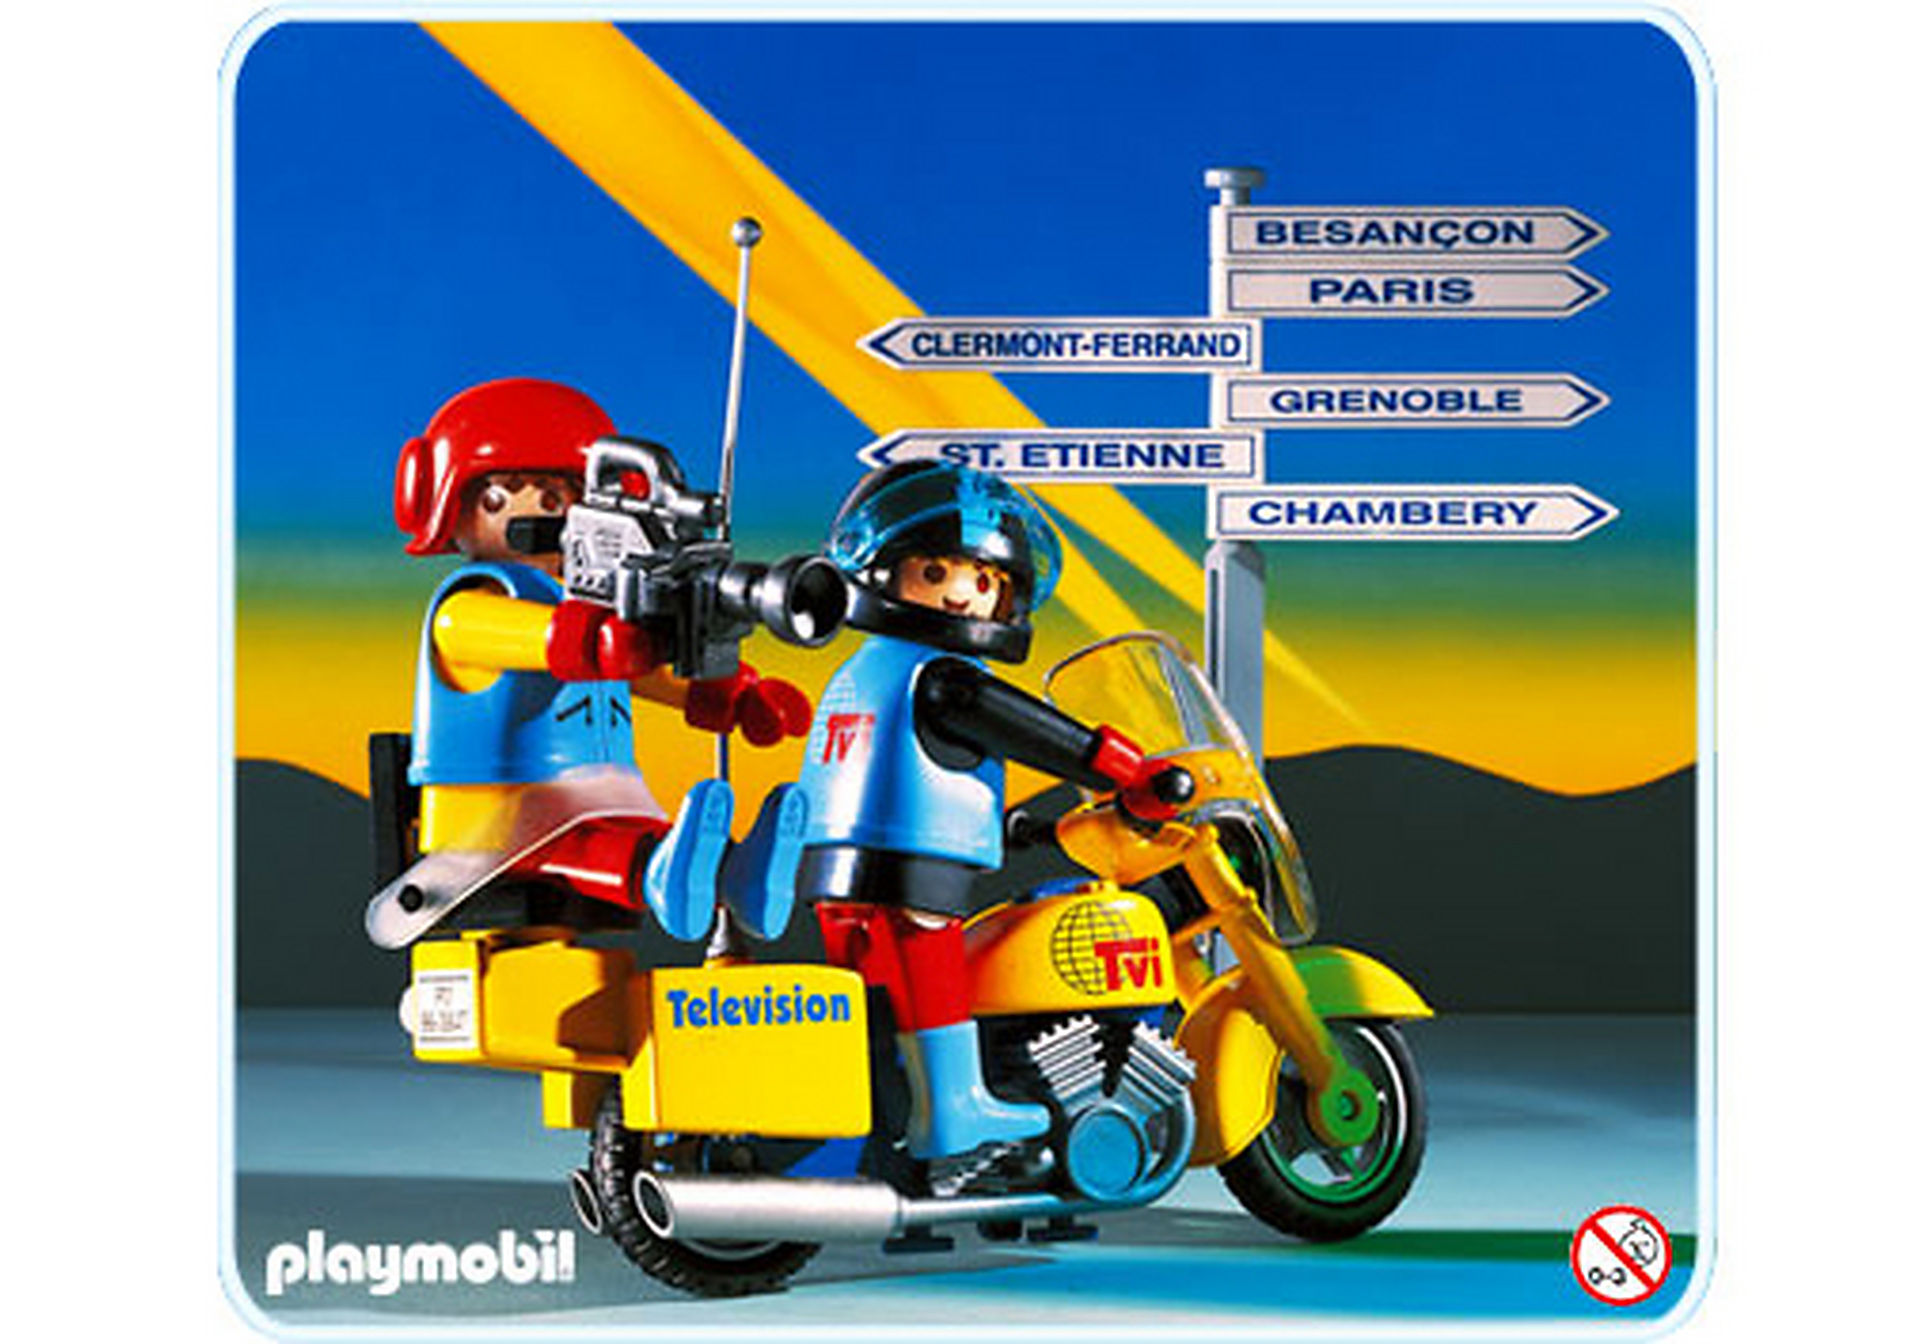 http://media.playmobil.com/i/playmobil/3847-A_product_detail/TV-Motorrad